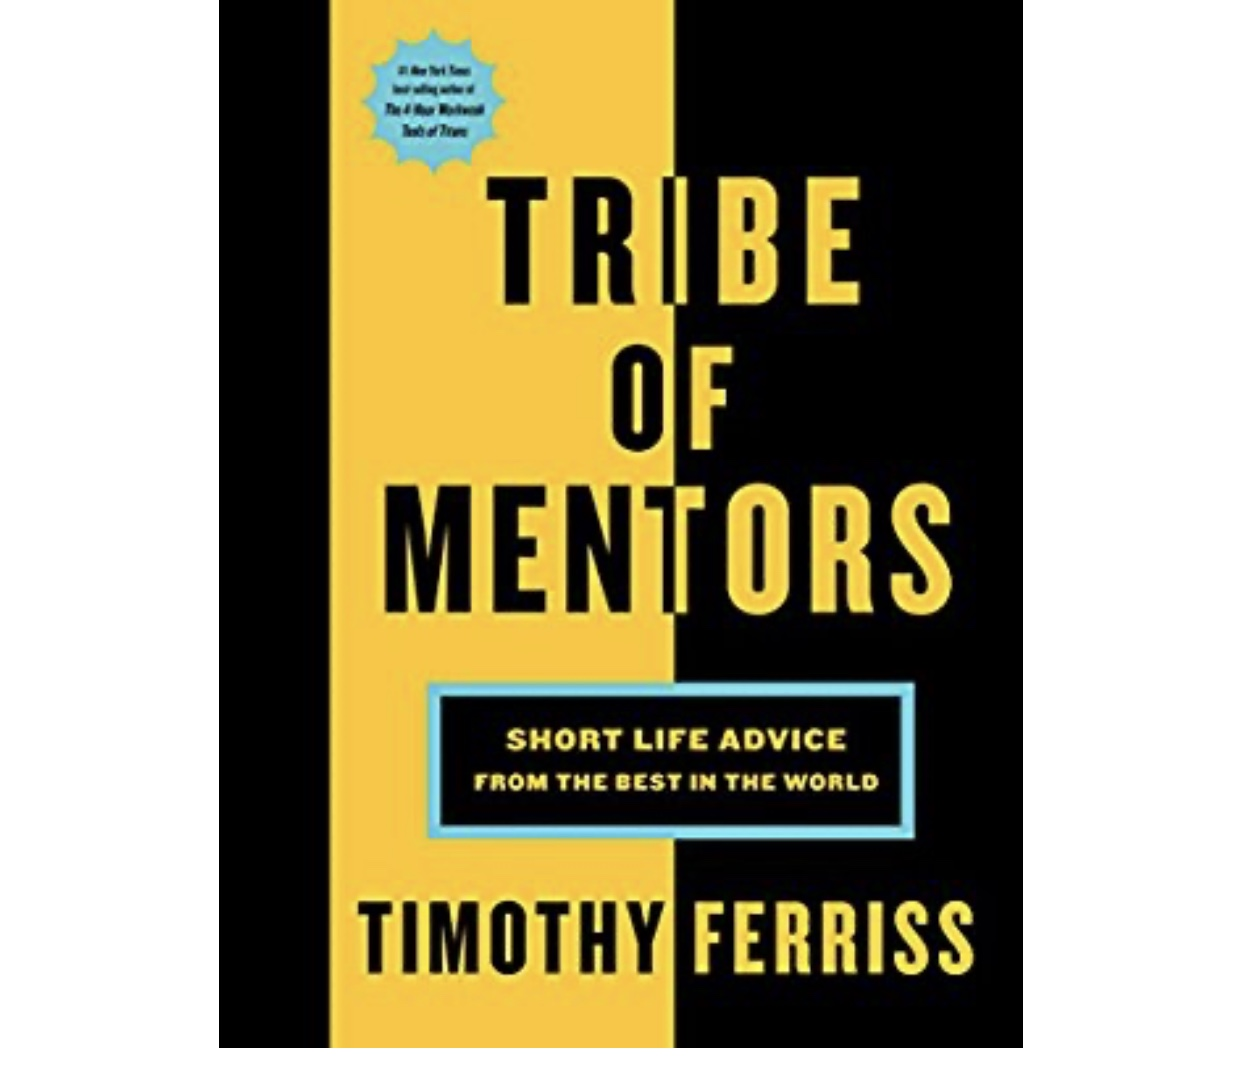 Tribe Of Mentors by Timothy Ferriss. A wellness book.